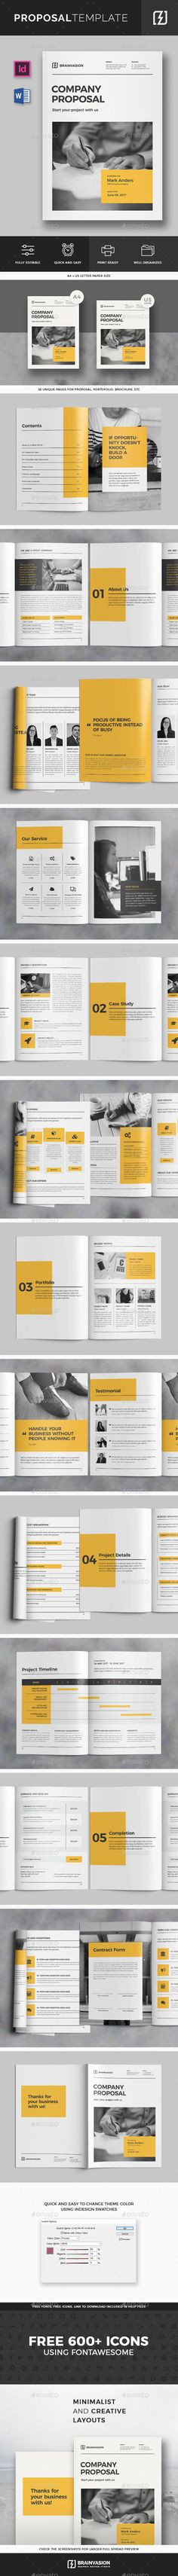 Indesign Proposal Template Proposal templates